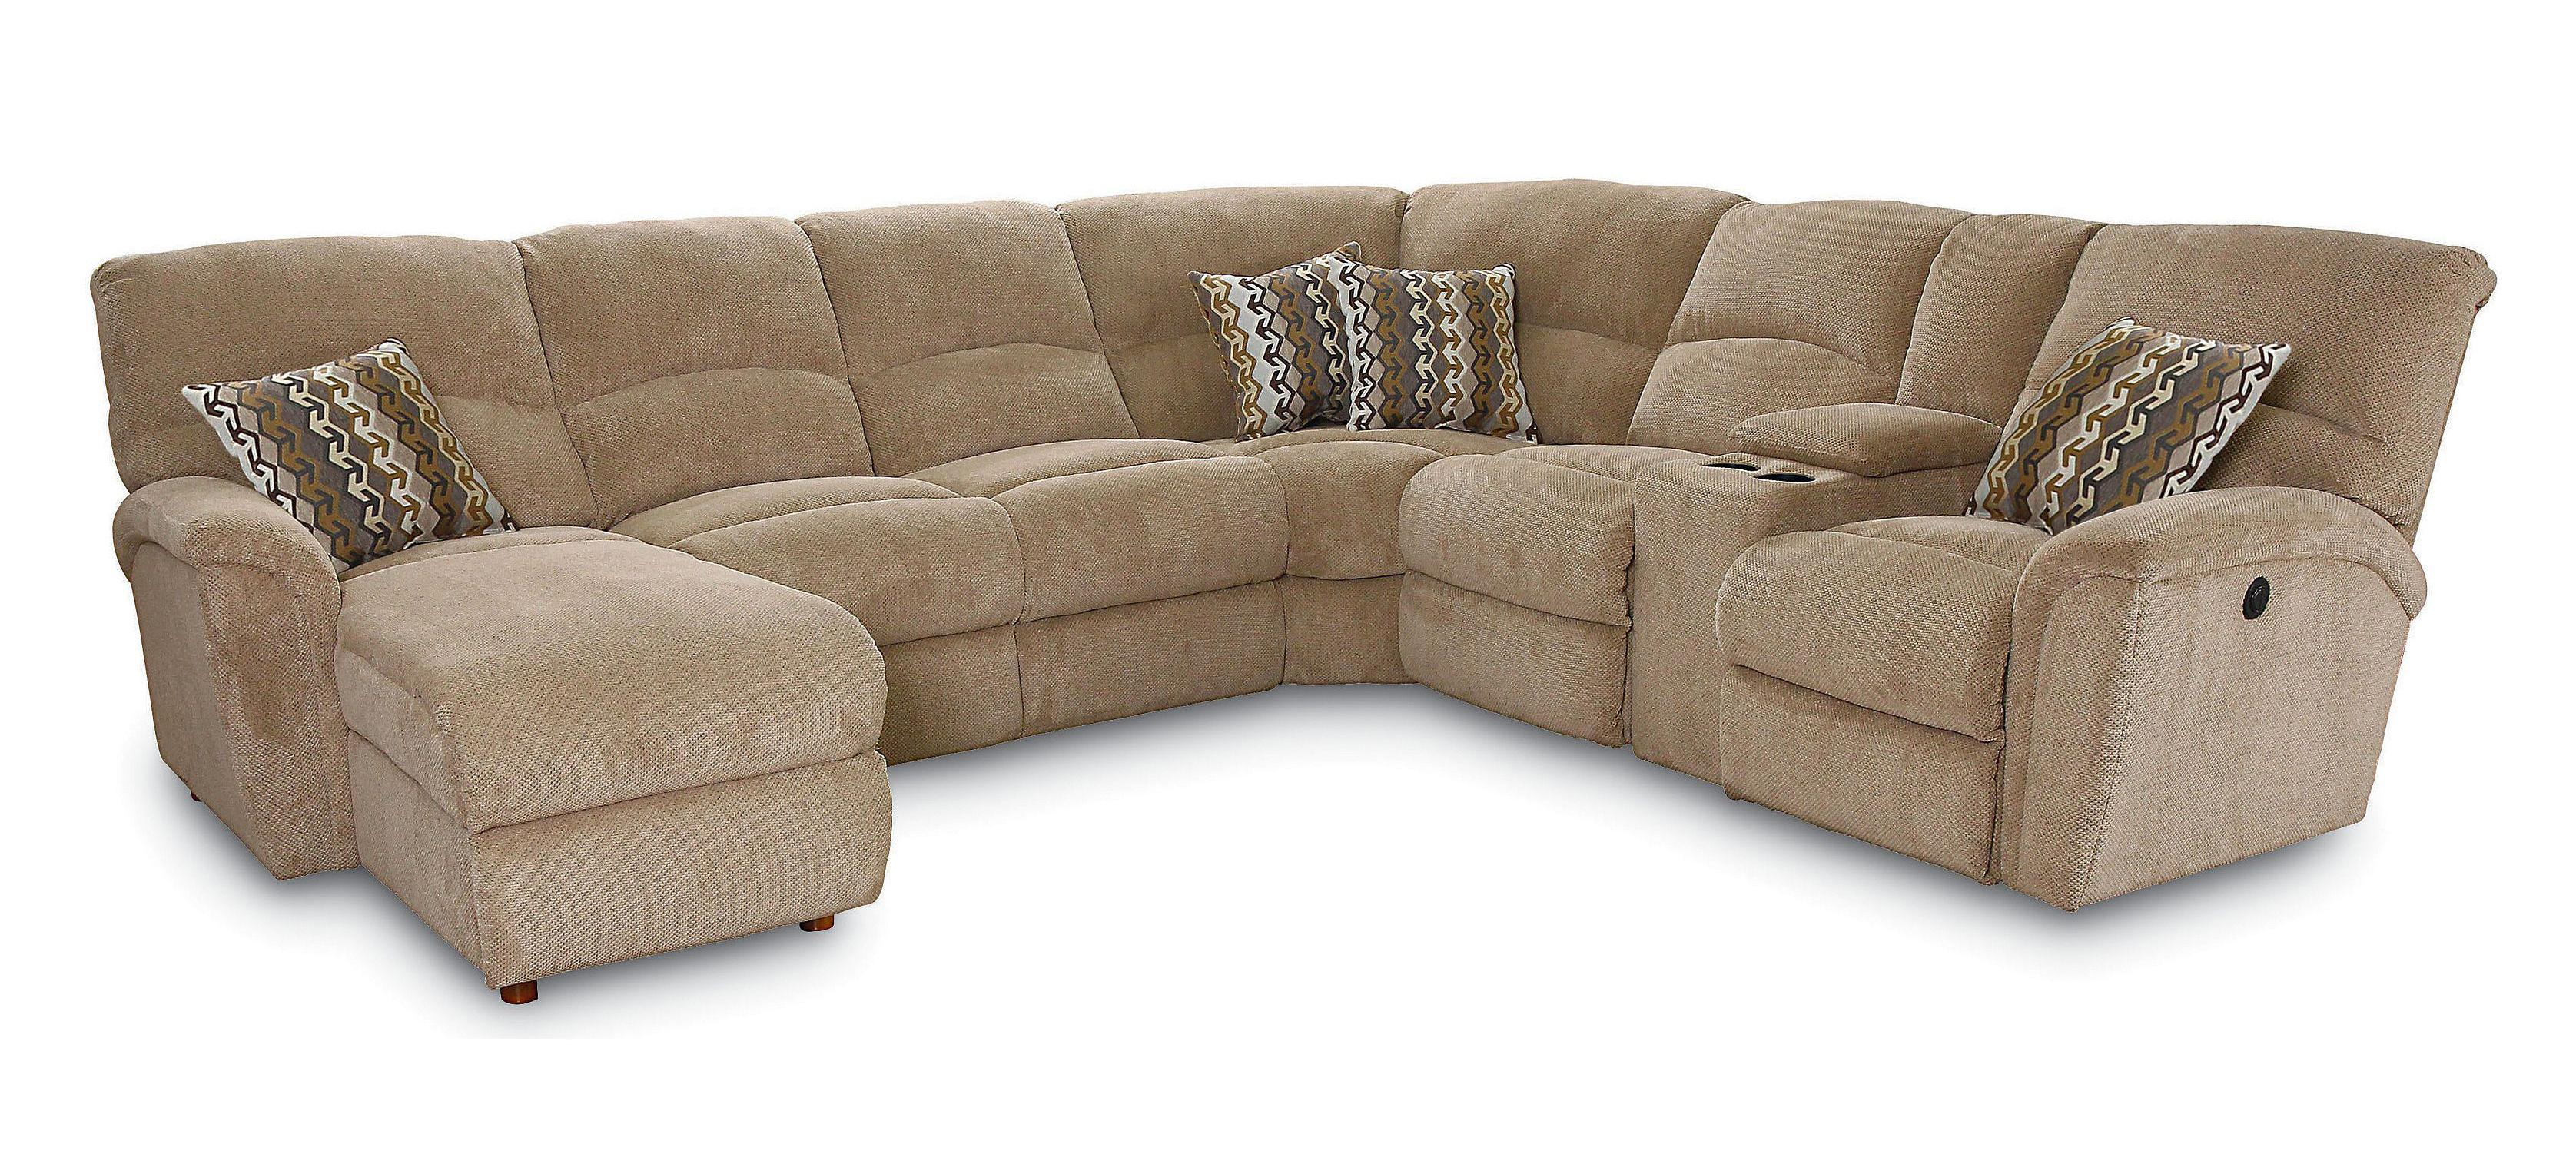 Lane Grand Torino Casual Four Piece Sectional Sofa w LAF Console